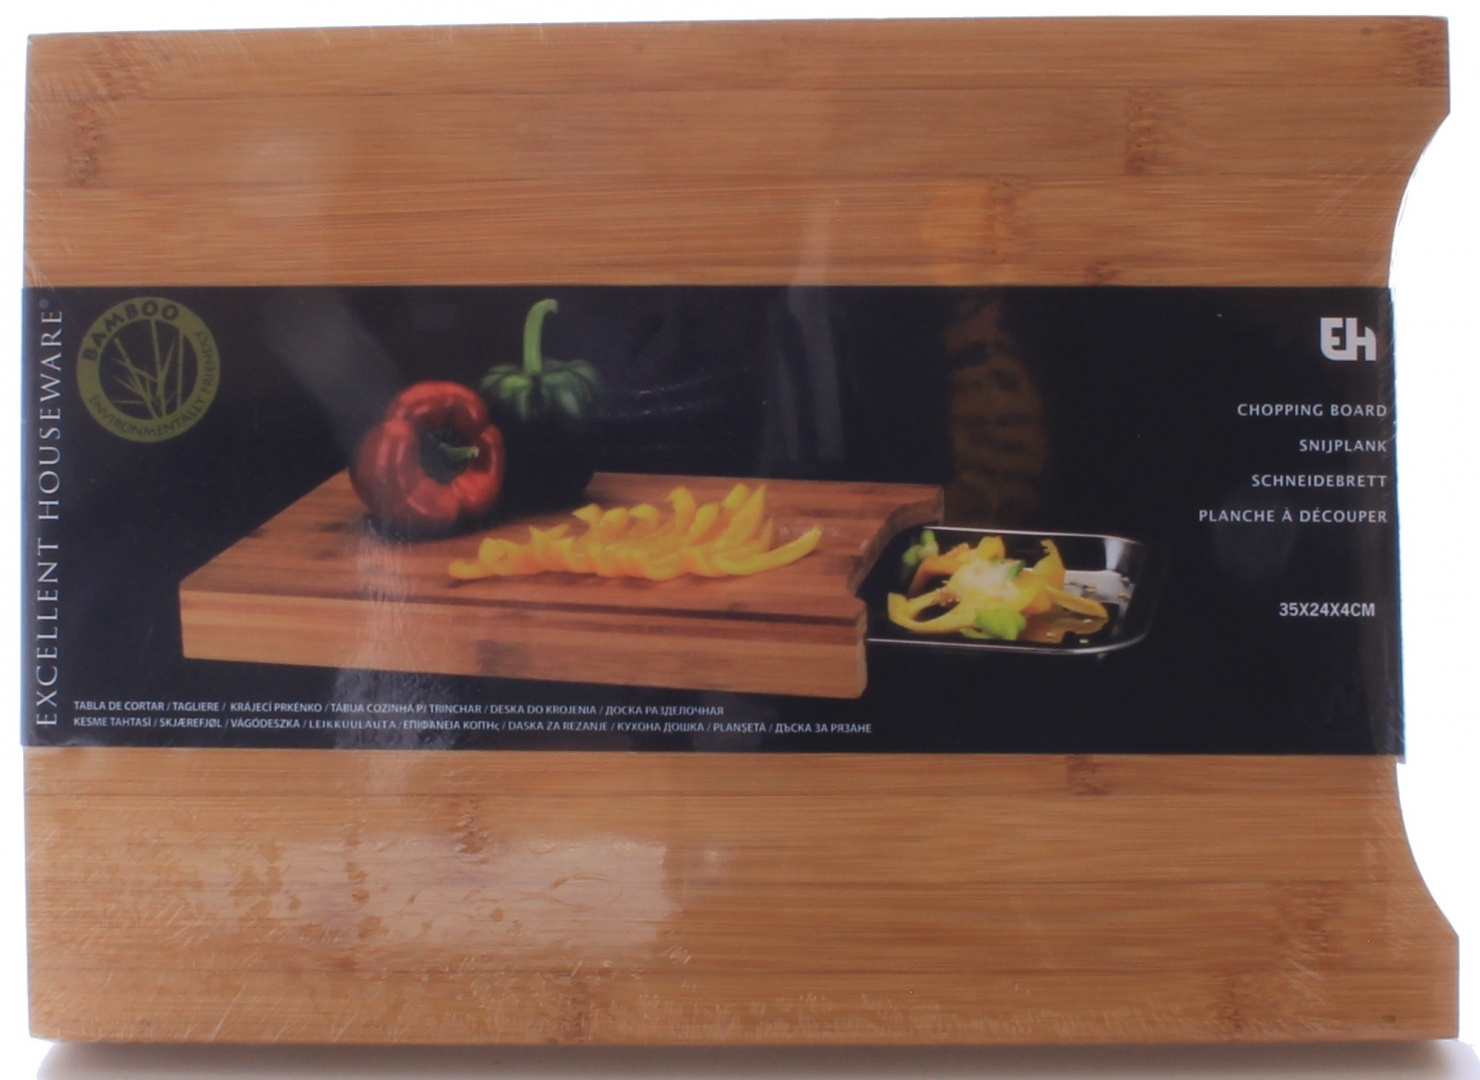 Tagliere Tiers Koopman Bamboo Chopping Board With A Stainless Steel Tray